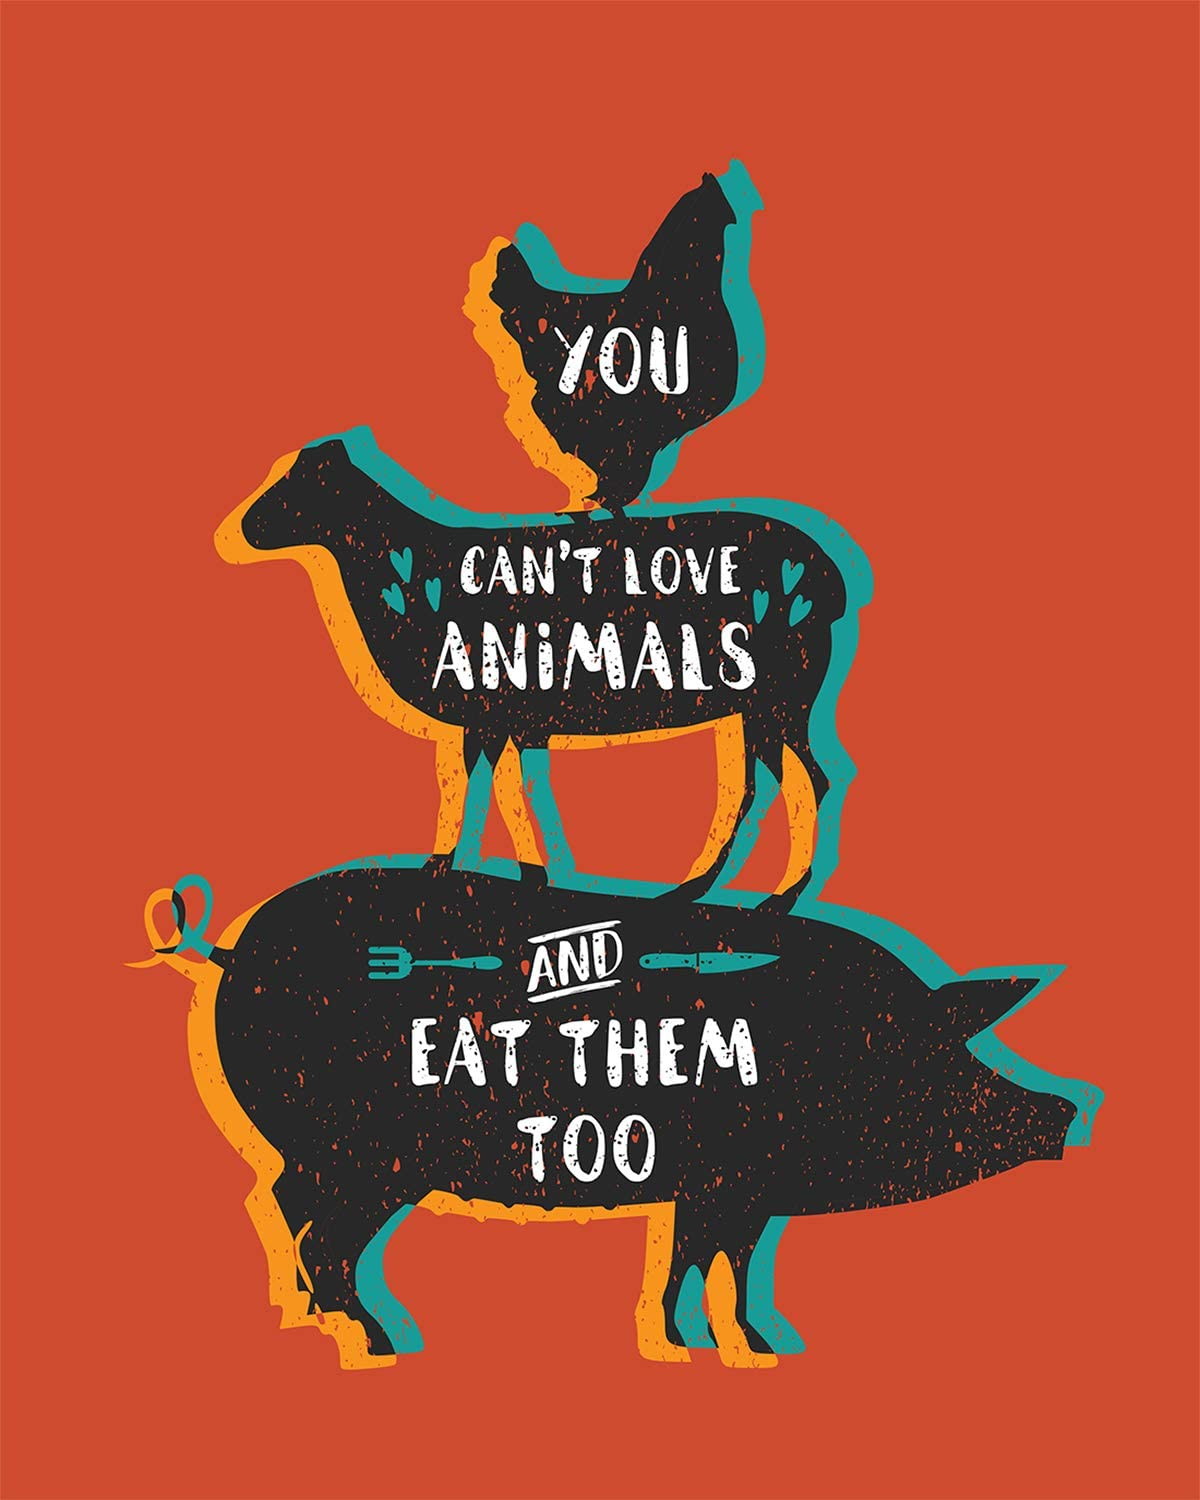 You Can't Love Animals & Eat Them Too - 8x10 Unframed Vegan and Vegetarian Pun Wall Decor Art Print on a Red Background - Great Funny Gift for Vegetarians, Vegans and Plant-Based Eaters